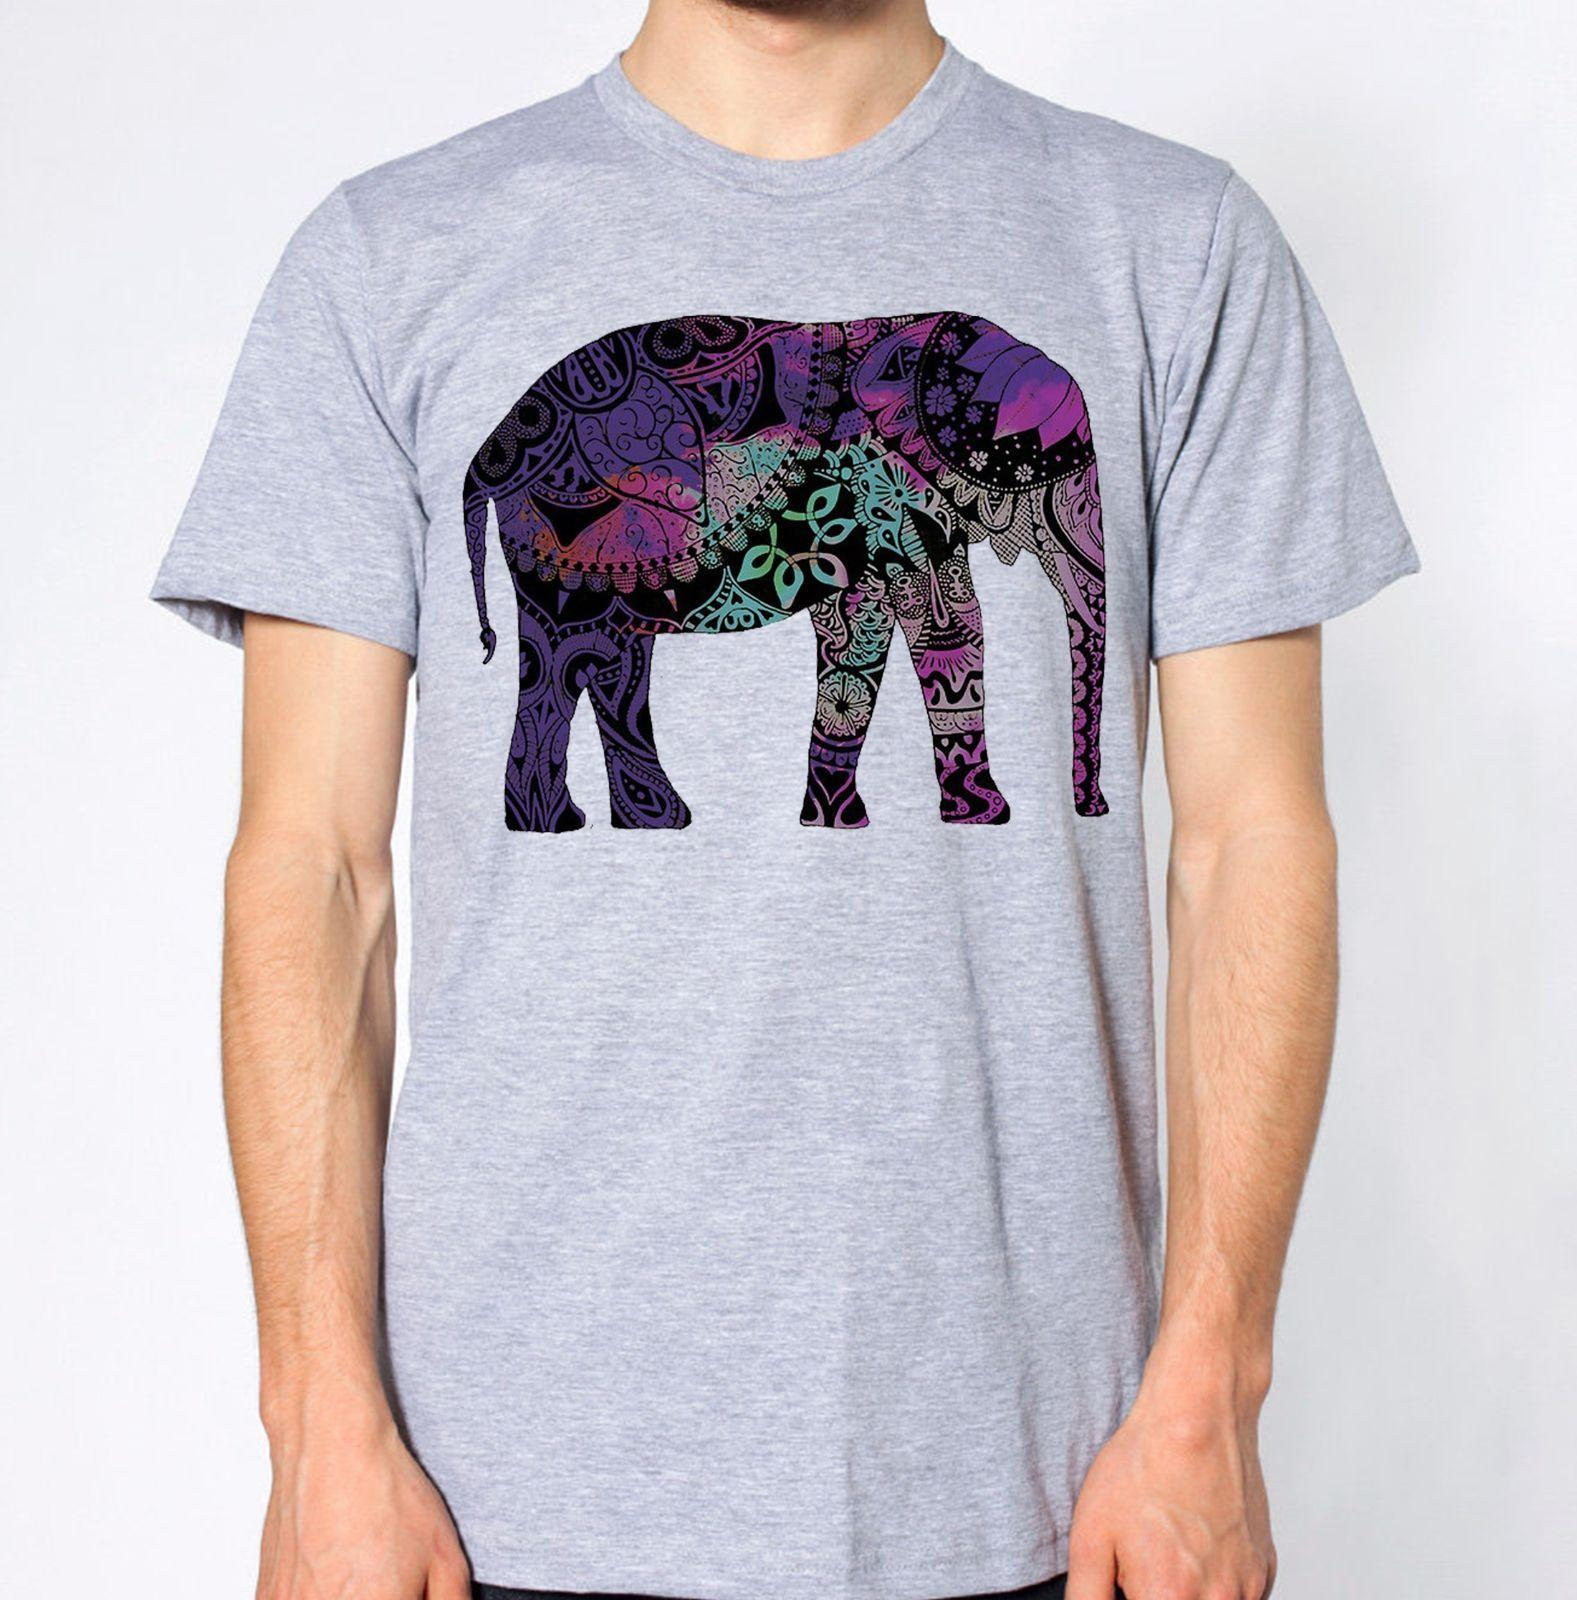 49c9c9f29 Elephant New T Shirt Animal Lover Top Abstract Tee Graphic Design Tees  Custom Jersey Brand Shirts Jeans Print T Shirt Shop Design Crazy T Shirts  Online From ...